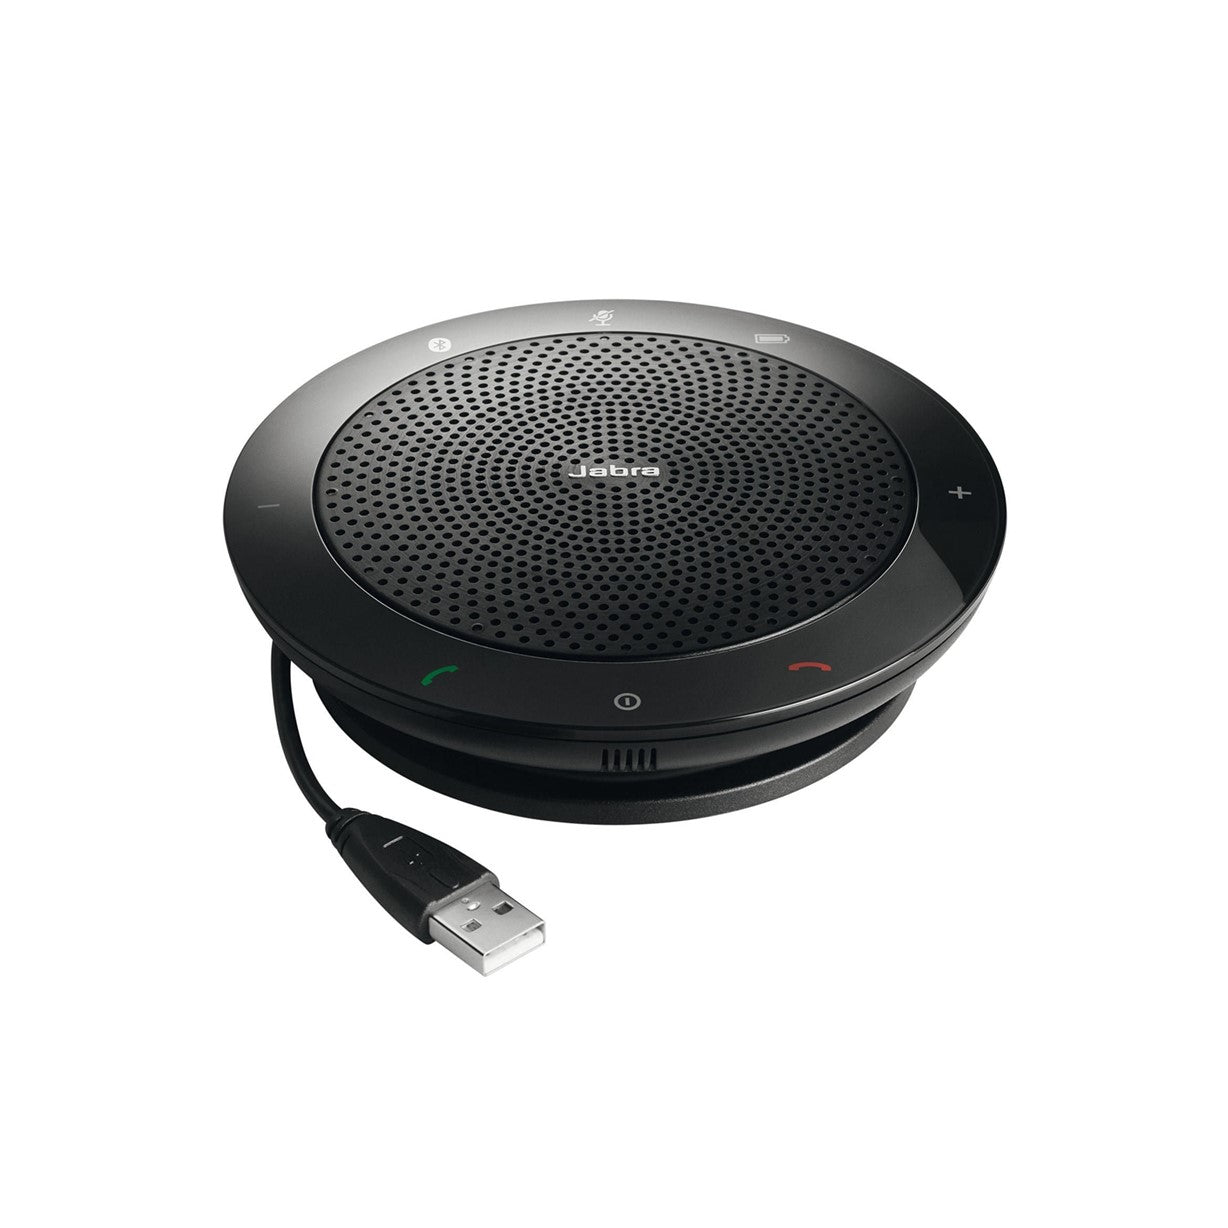 Parlante Jabra Speak 510